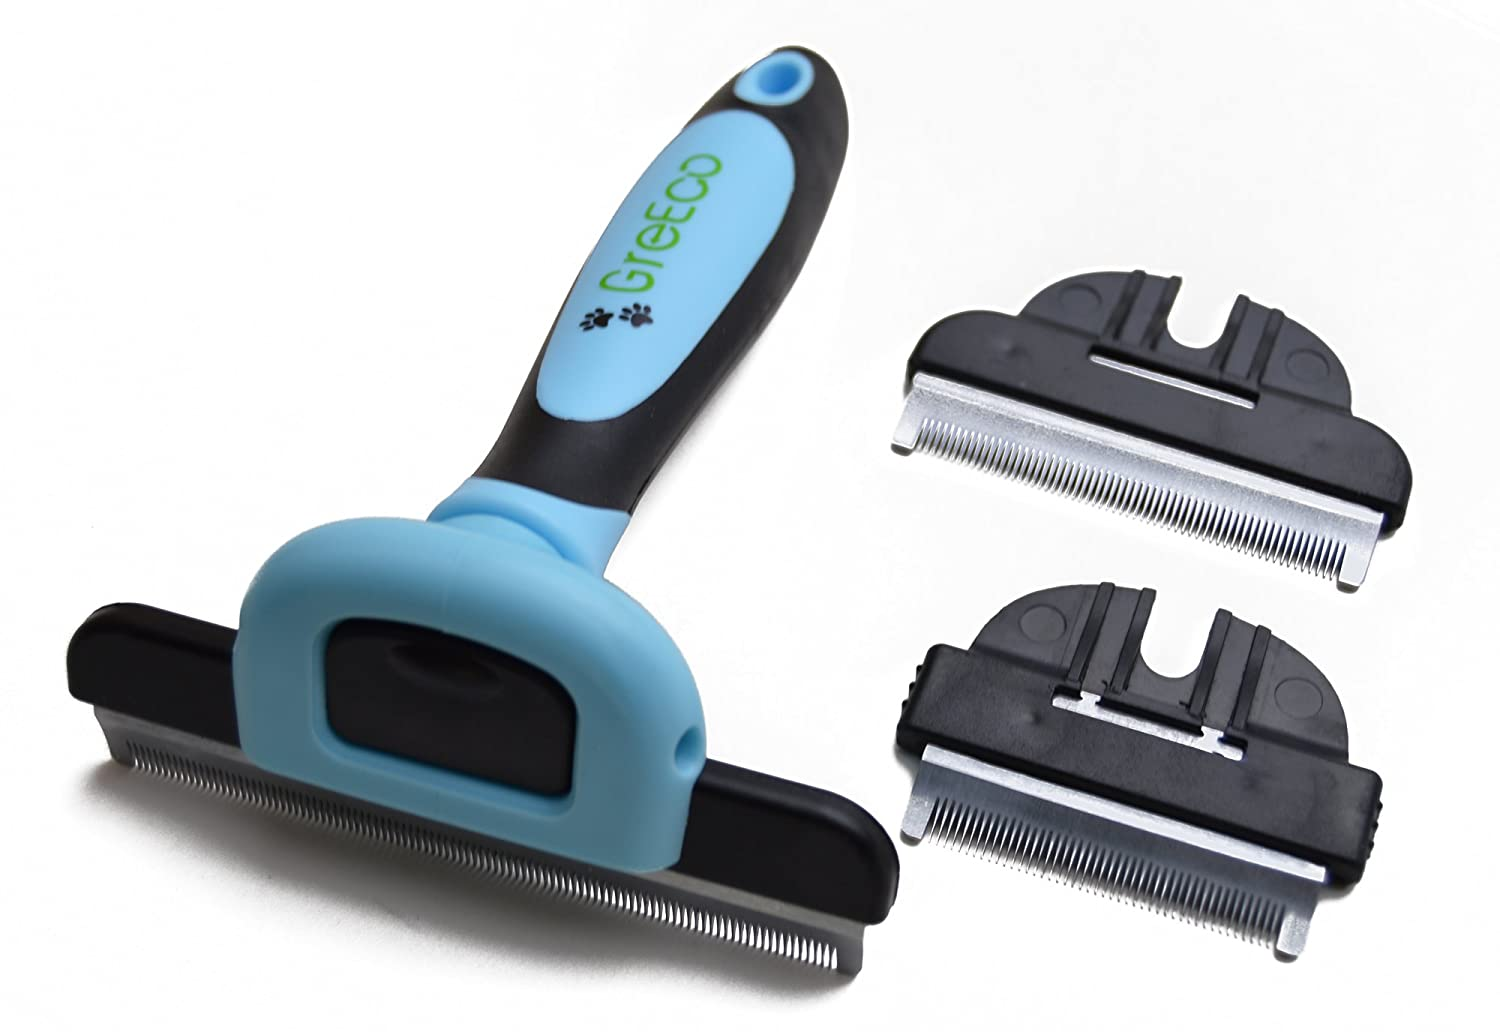 GreEco 3-in-1 Professional Deshedding Tool & Pet Grooming Brush, Including 3 Size brushes, For Small, Medium & Large Pets, Especially Excellent for Dogs + Cats With Short or Long Shedded Hair. Dramatically Reduces Shedding Hair By Up To 90% In Minu